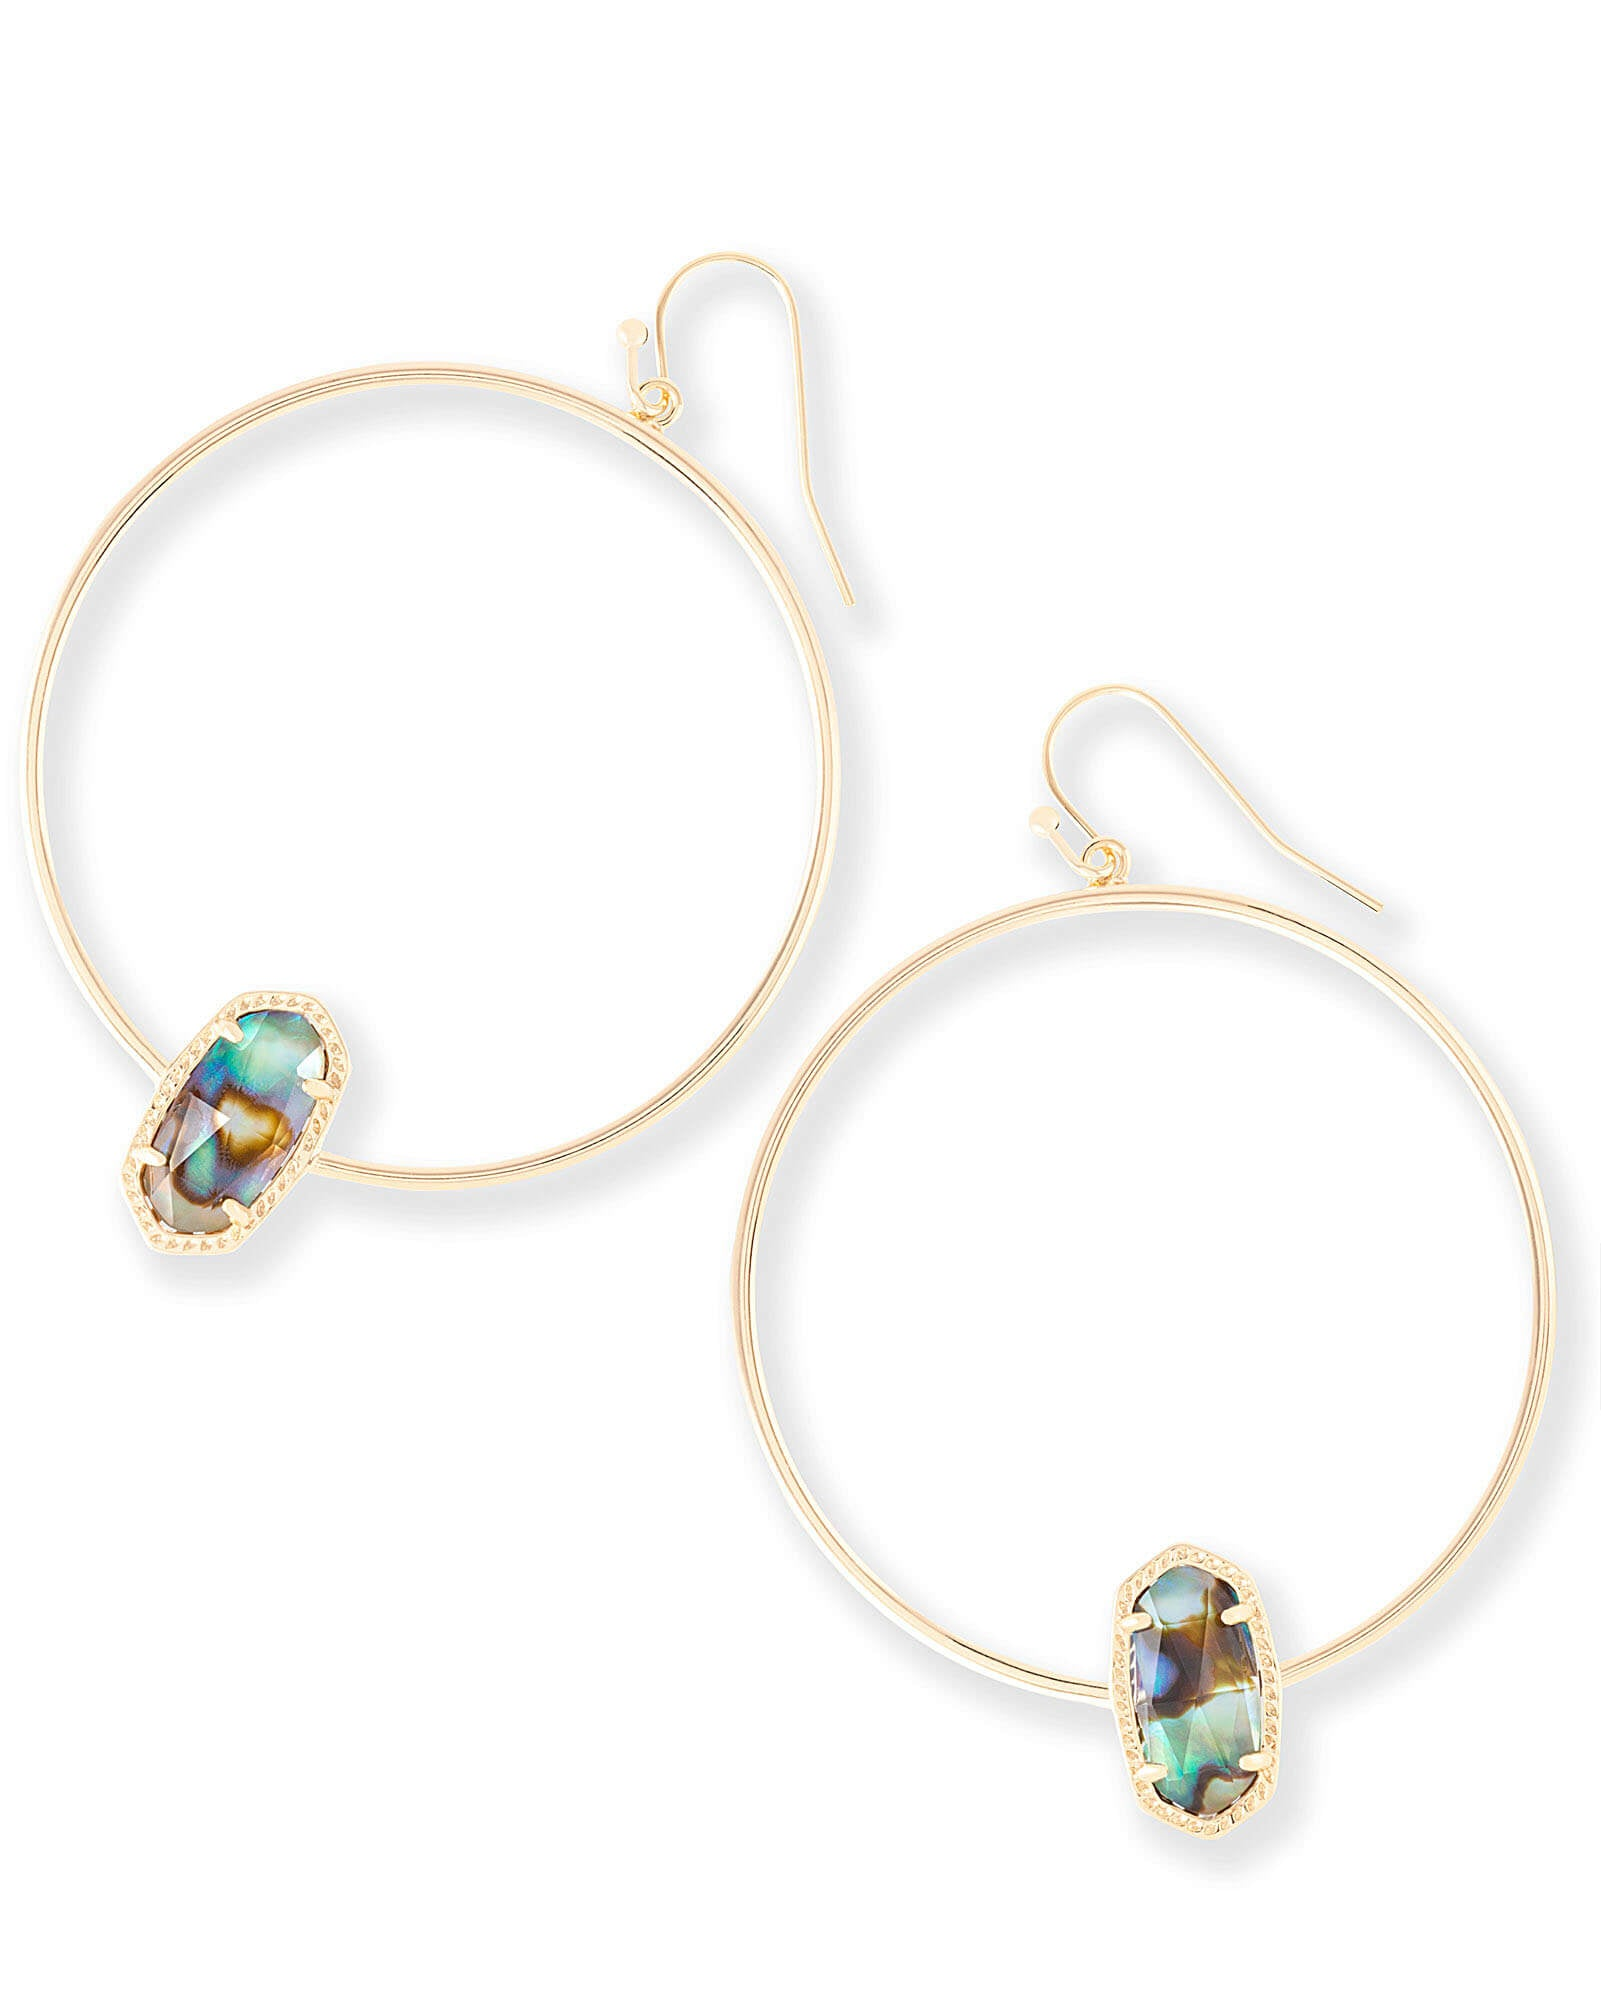 of earrings k hoops gemstone gold jones rose jewelry products filled hoop jewellery drops